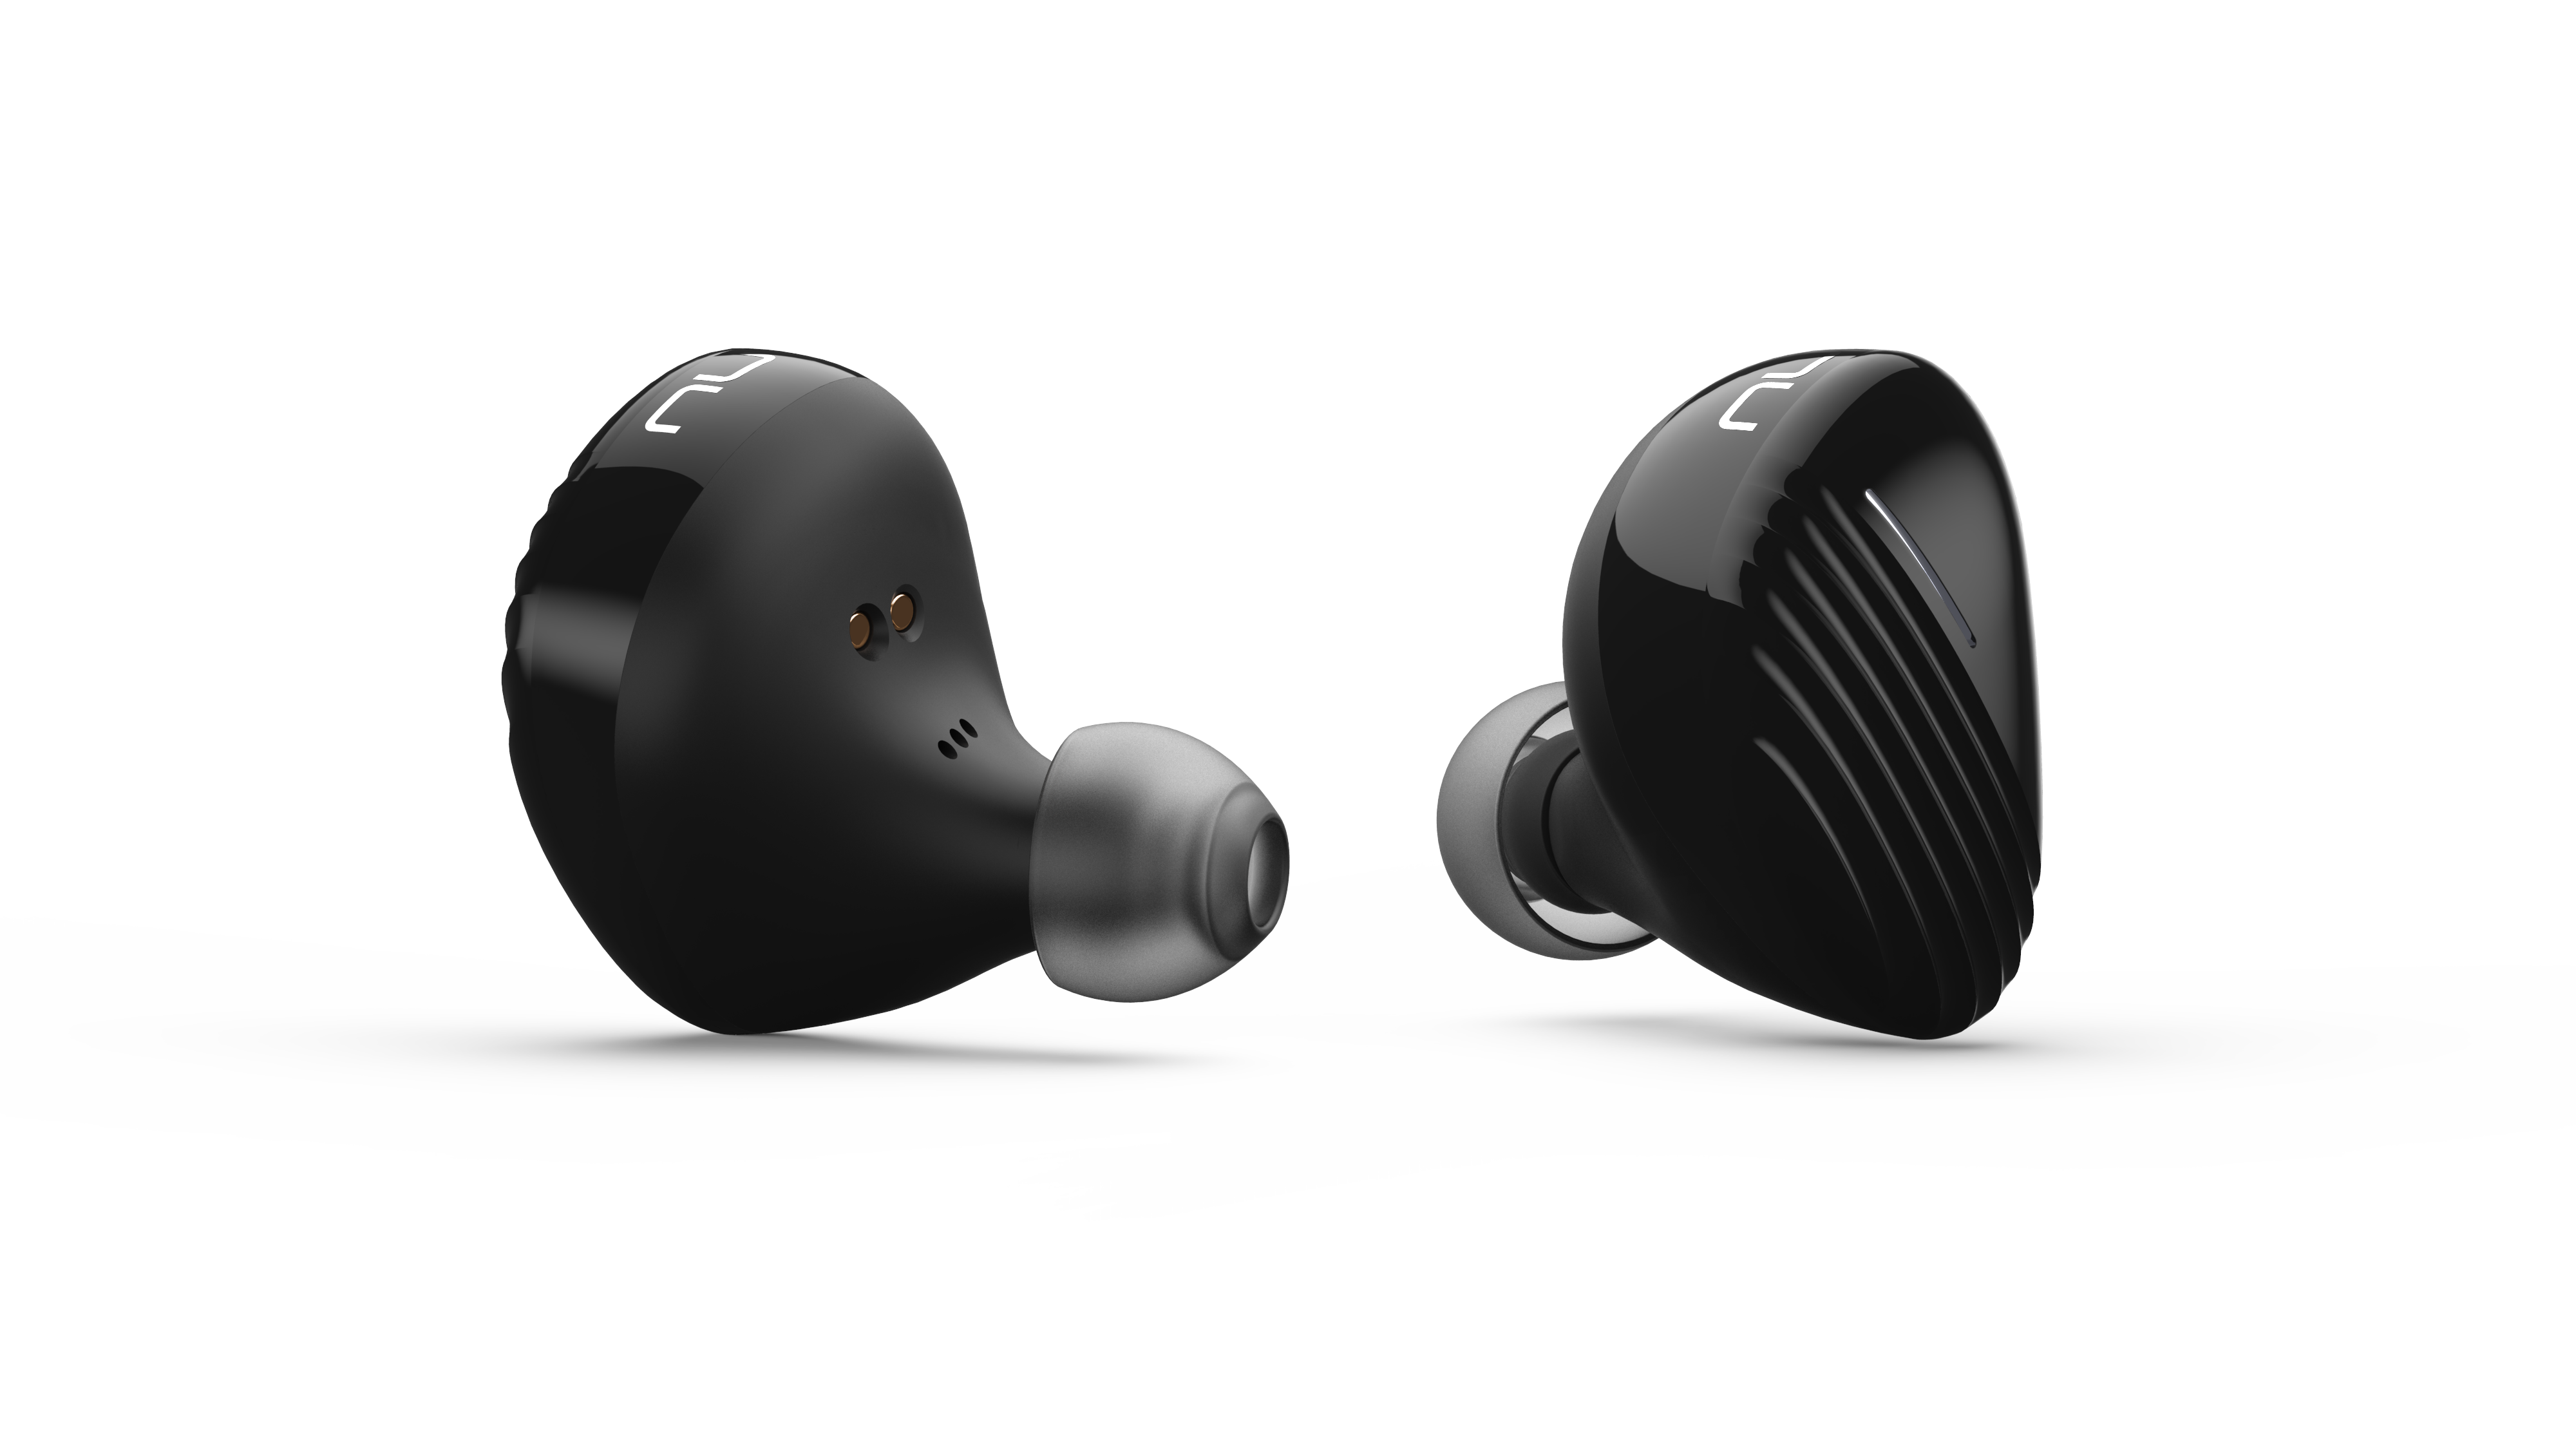 Optoma's NuForce BE Free8 truly wireless headphones have audiophile sound quality, sweat resistance, and much more [Sponsored Post]